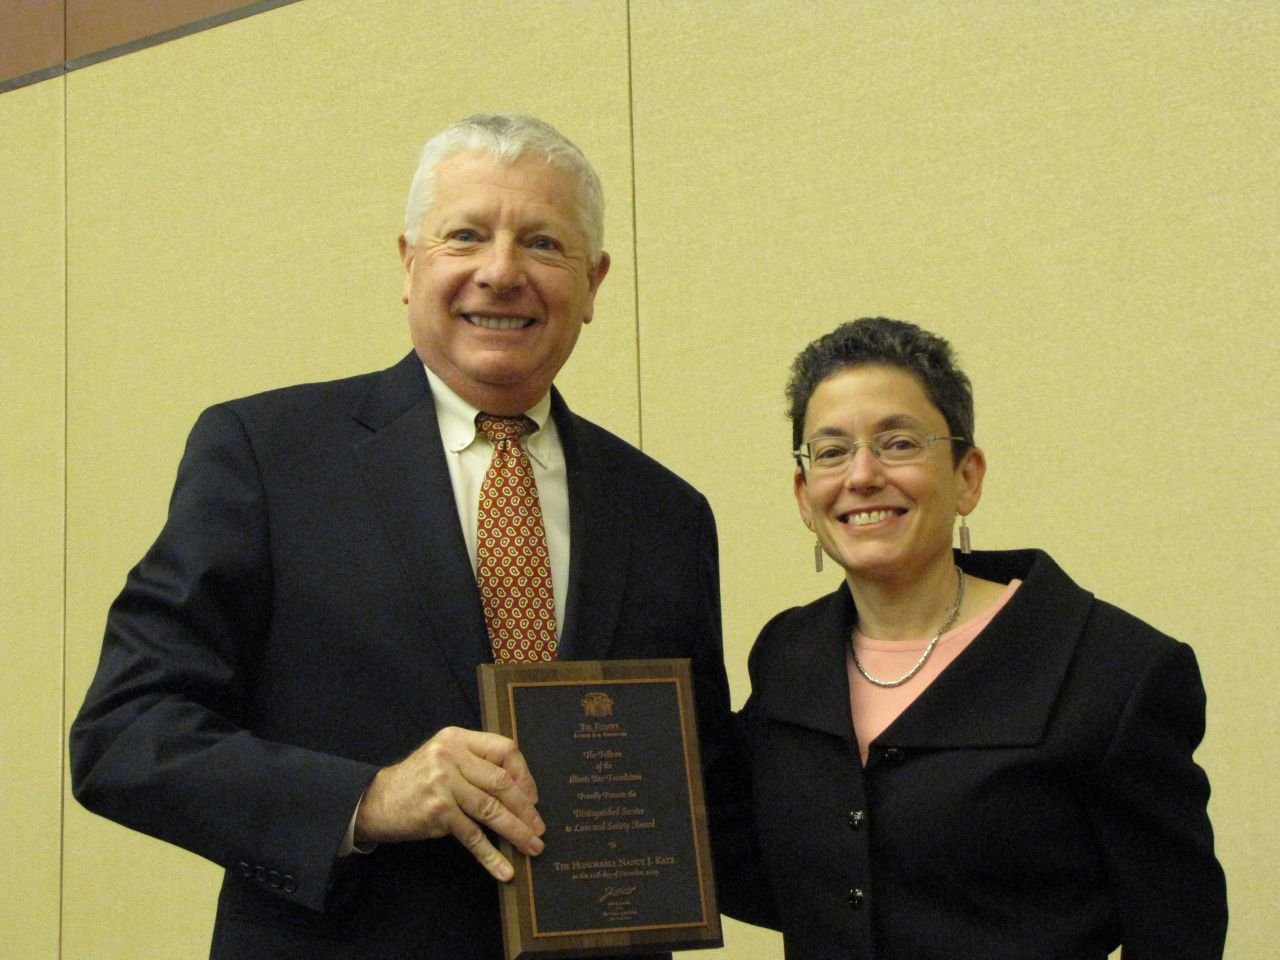 IBF past president David Sosin presents the Distinguished Service to Law & Society Award to Judge Nancy J. Katz